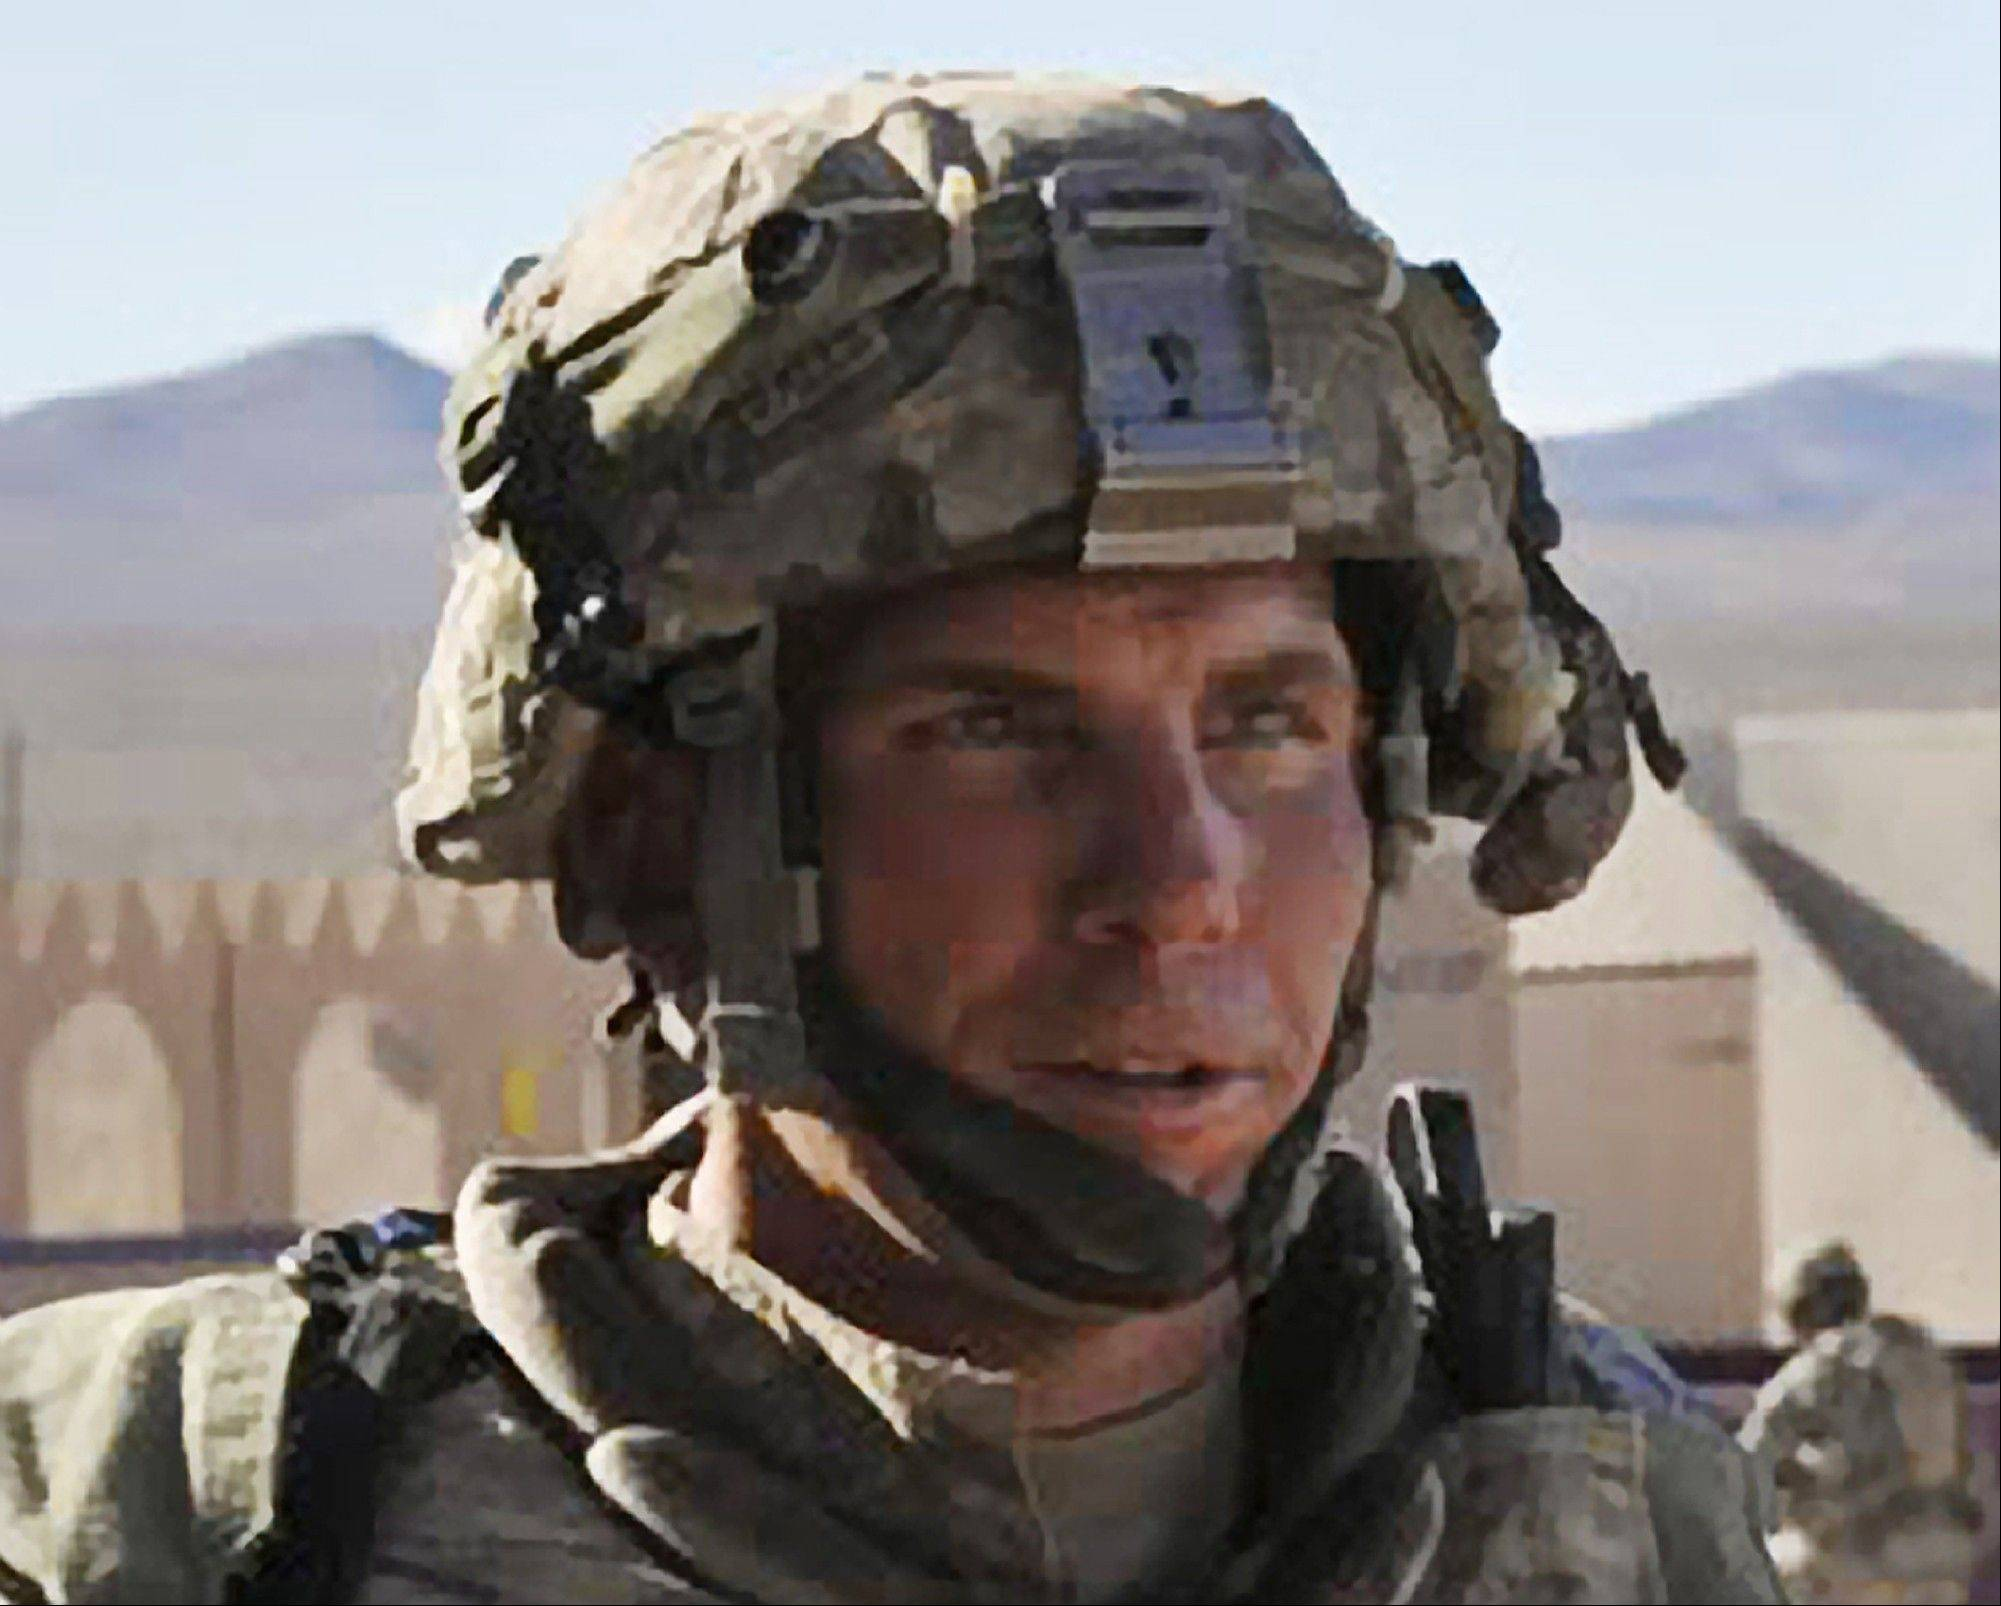 The Army says it will seek the death penalty against Staff Sgt. Robert Bales, seen here, who is accused of massacring 16 Afghan villagers during pre-dawn raids in March.